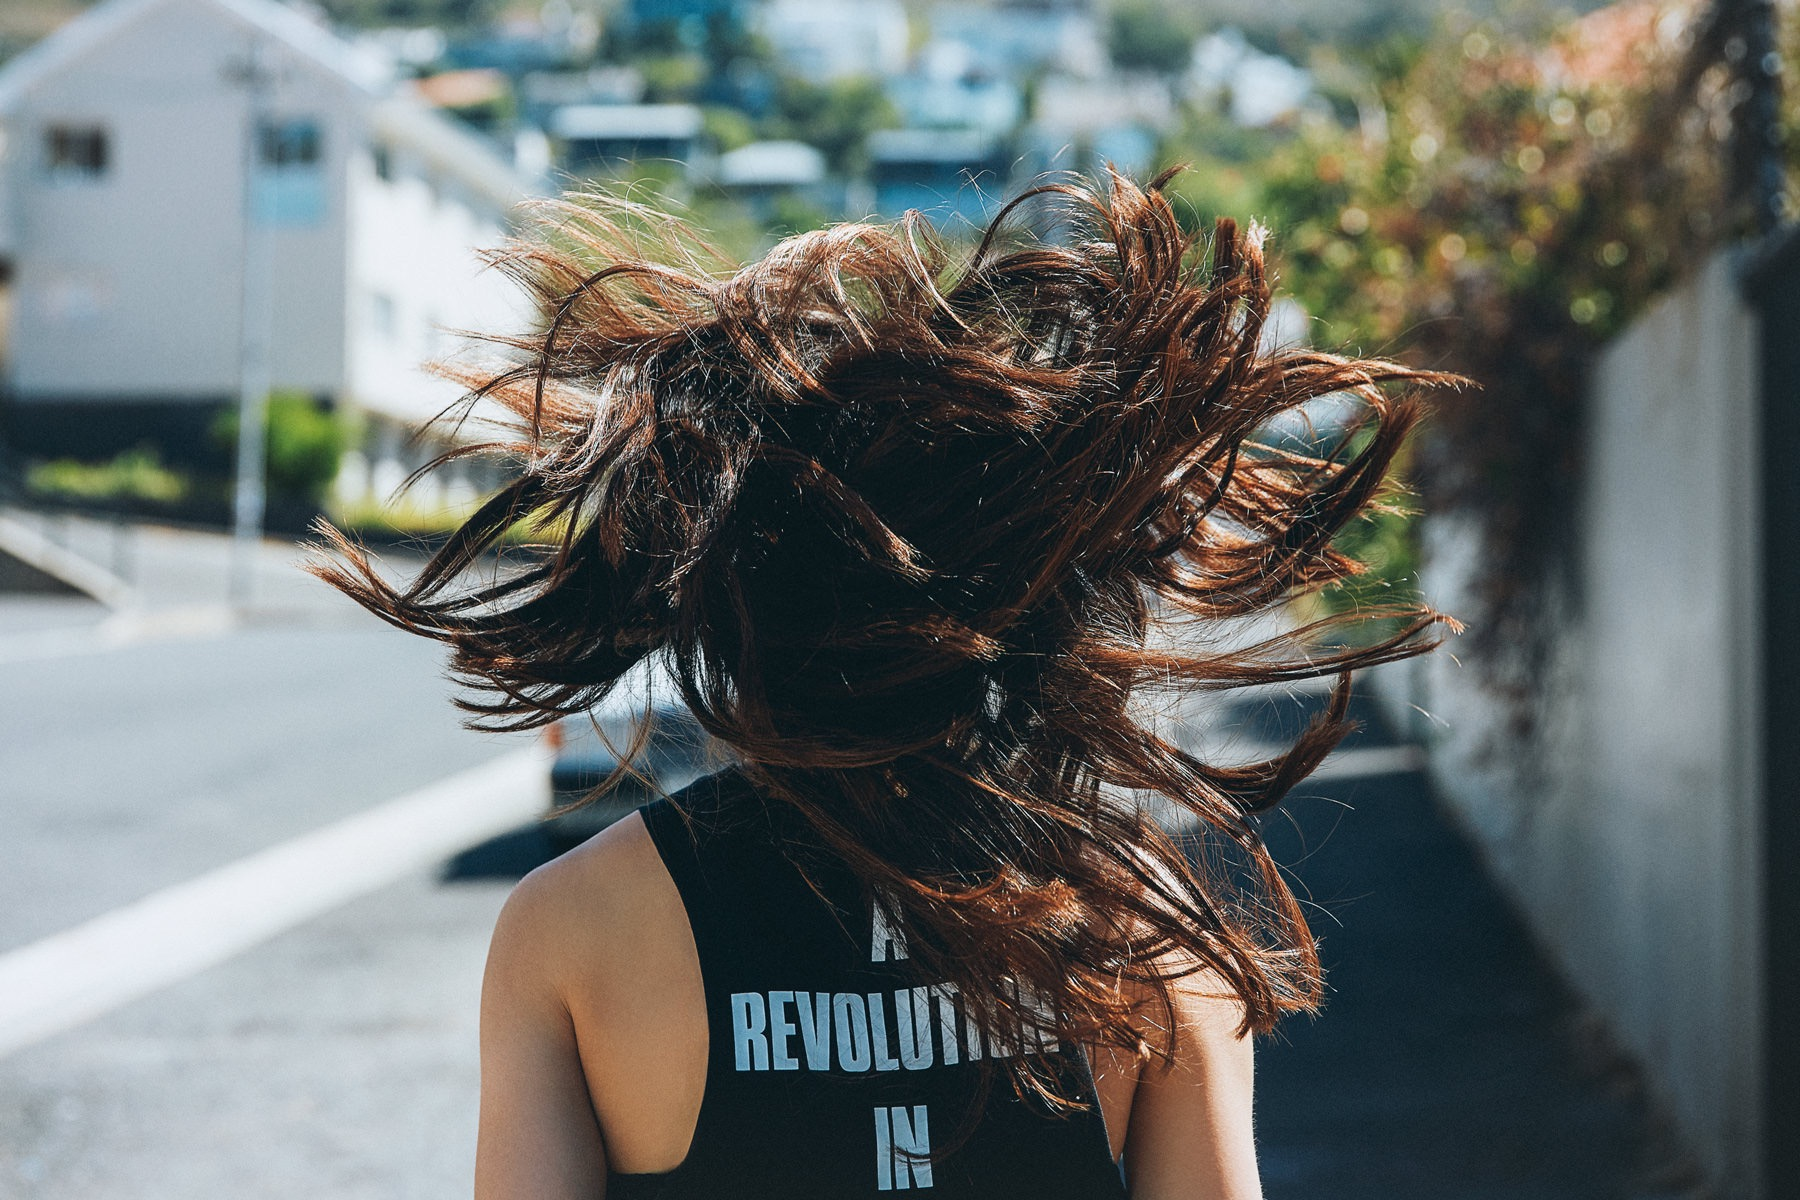 ­photo, photos, photography, photographer, photographers, woman, women, nike, candid, sunny, sunlight, hair, walking, street, streets, blur, blurred background, a revolution in, residential, suburban